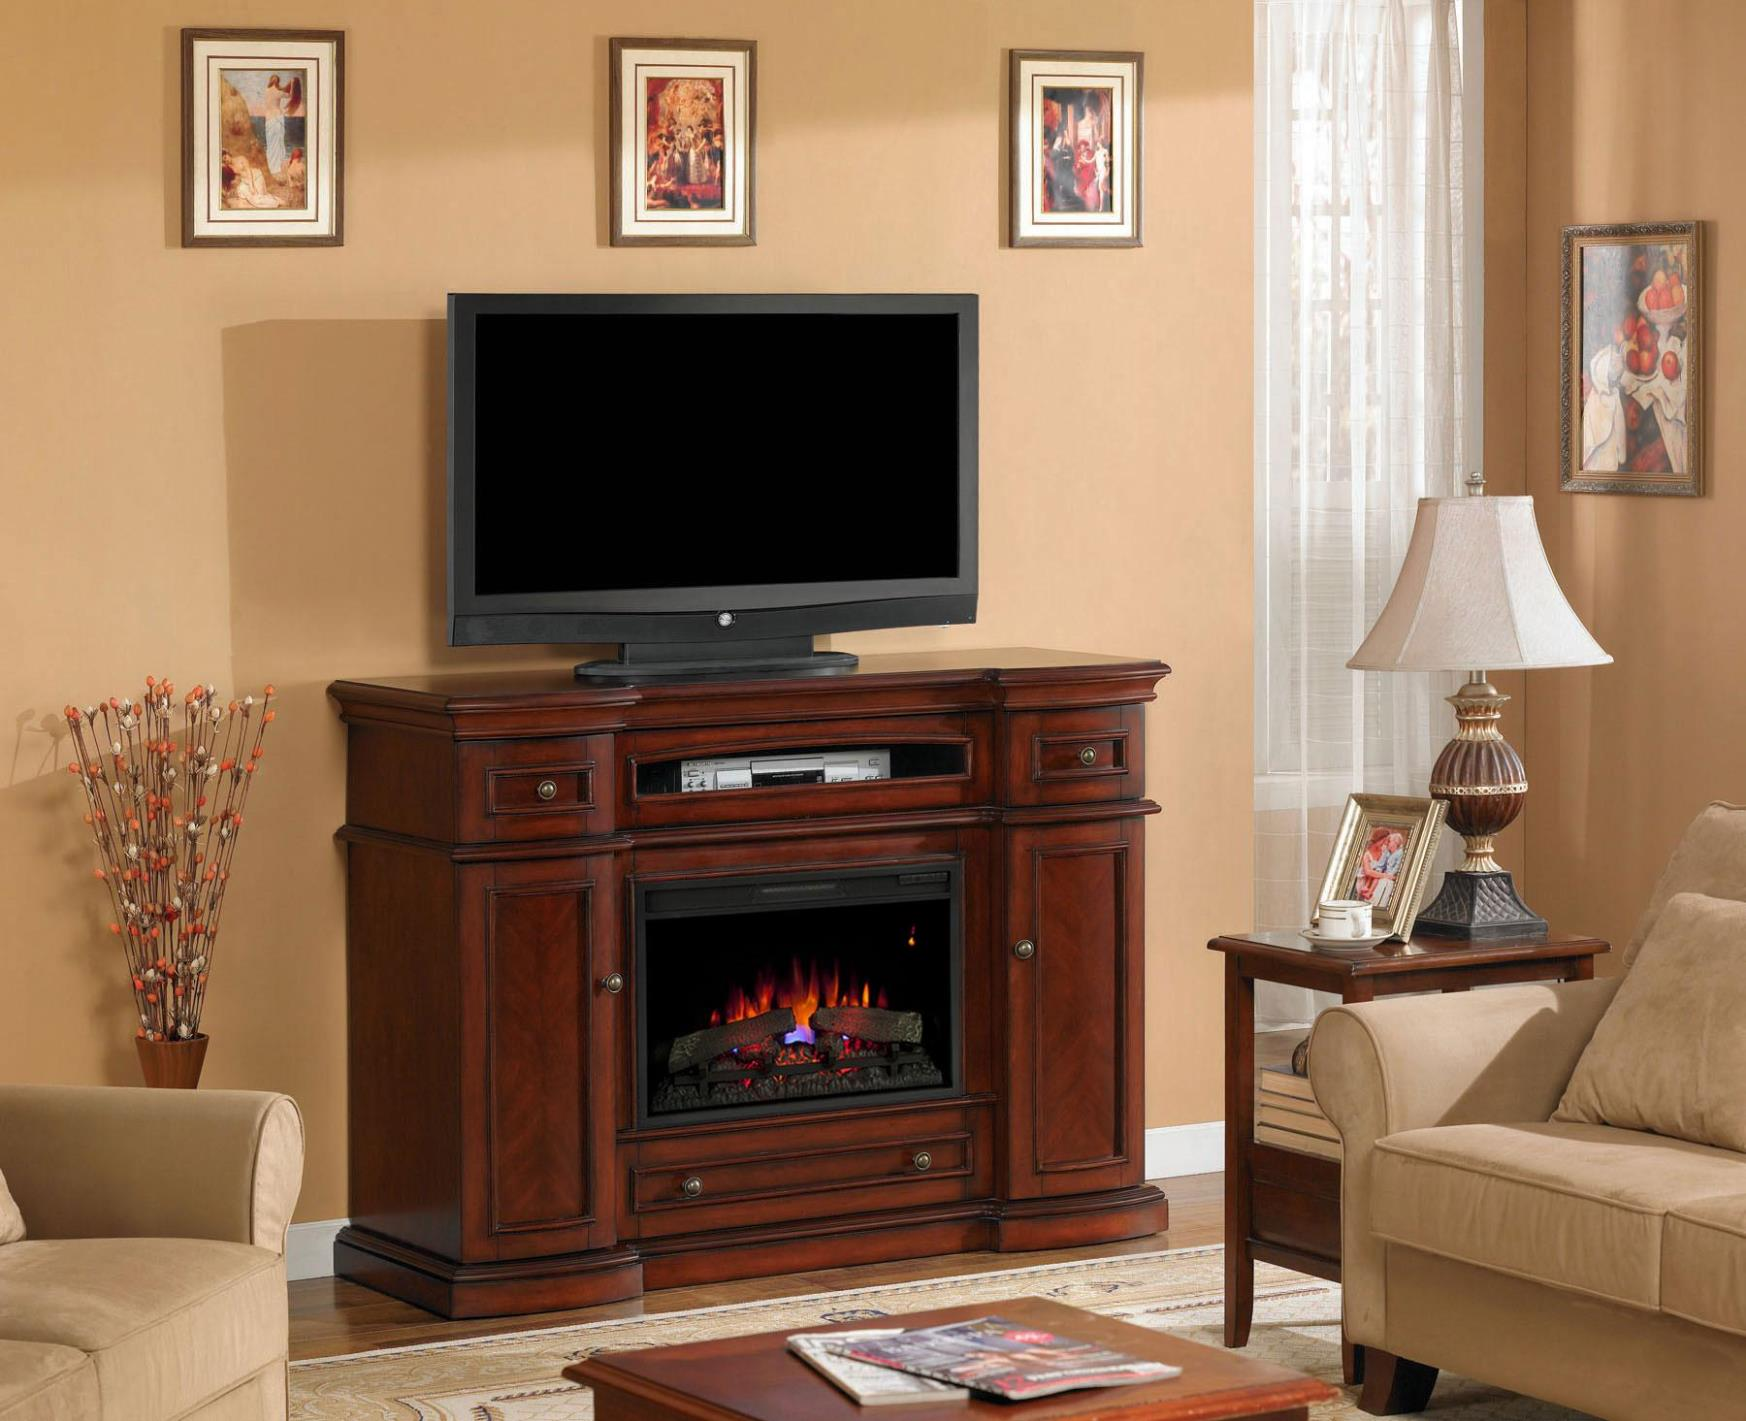 Image of: Electric Fireplace Media Console Ideas